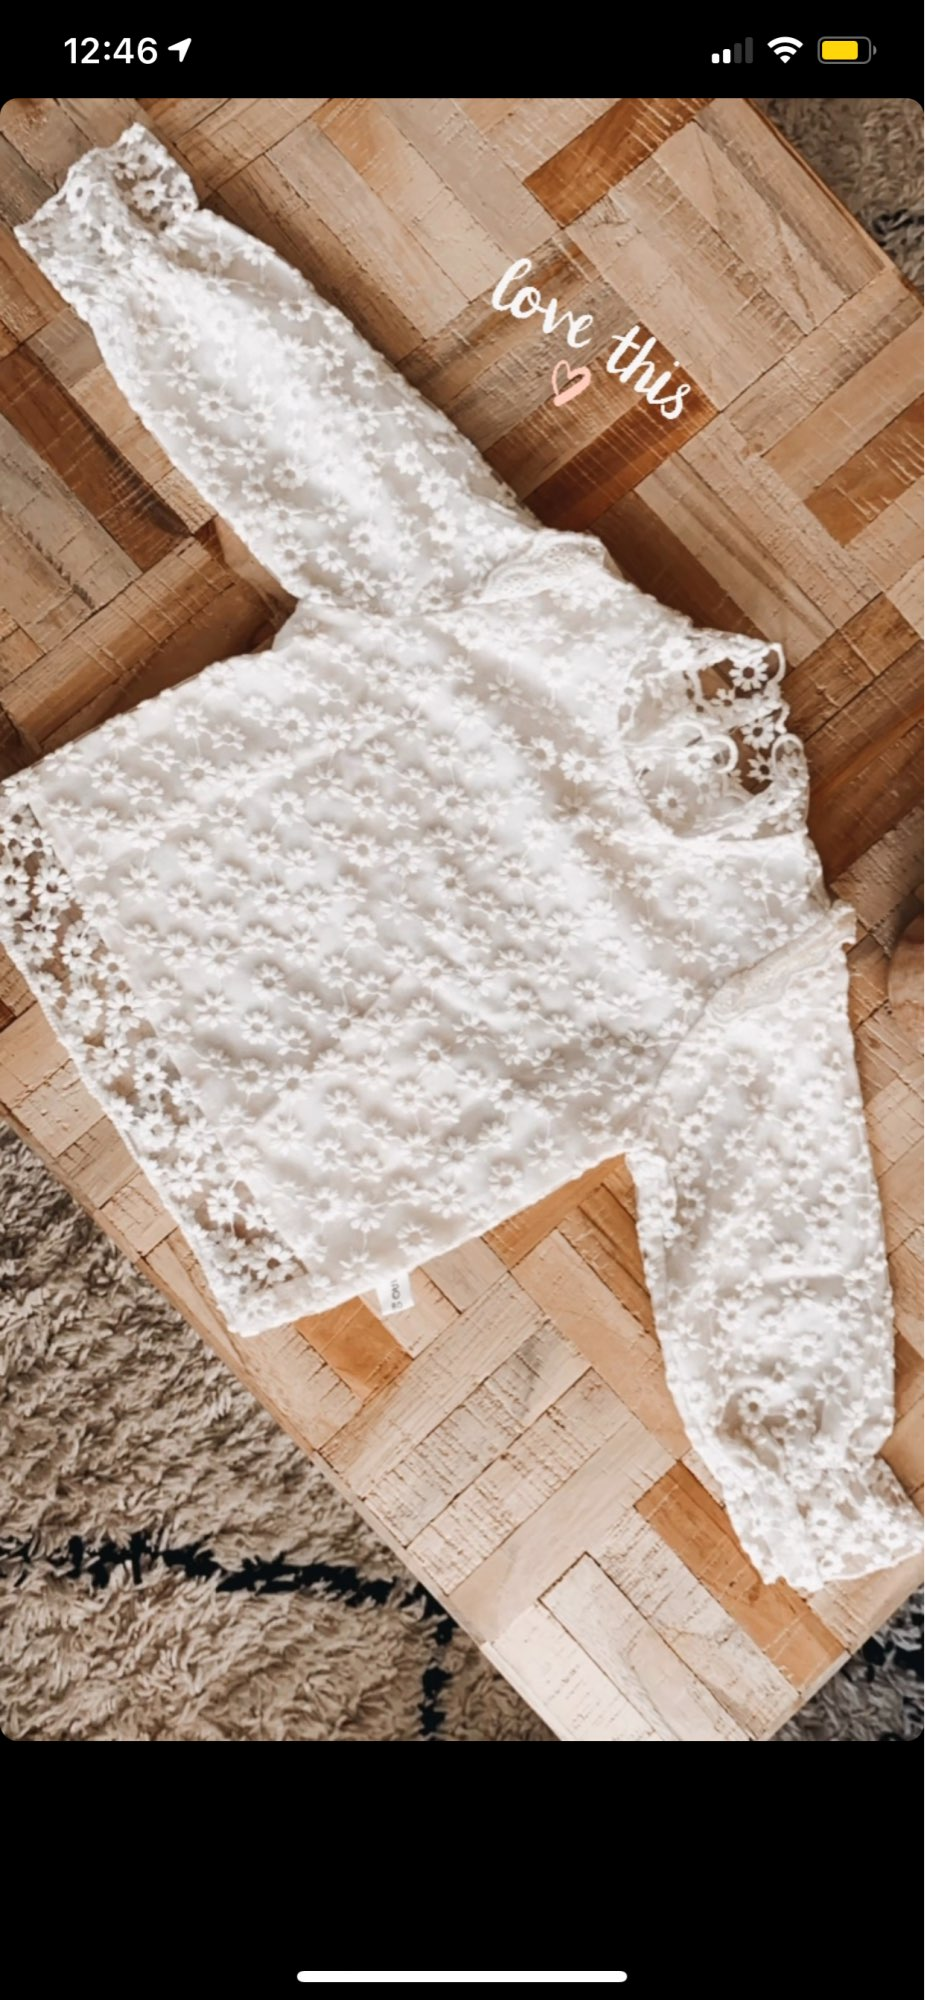 pretty princess autumn fly full sleeve solid tops outwear shirts blouses coat toddler kids baby girls clothes 6M-6Y photo review